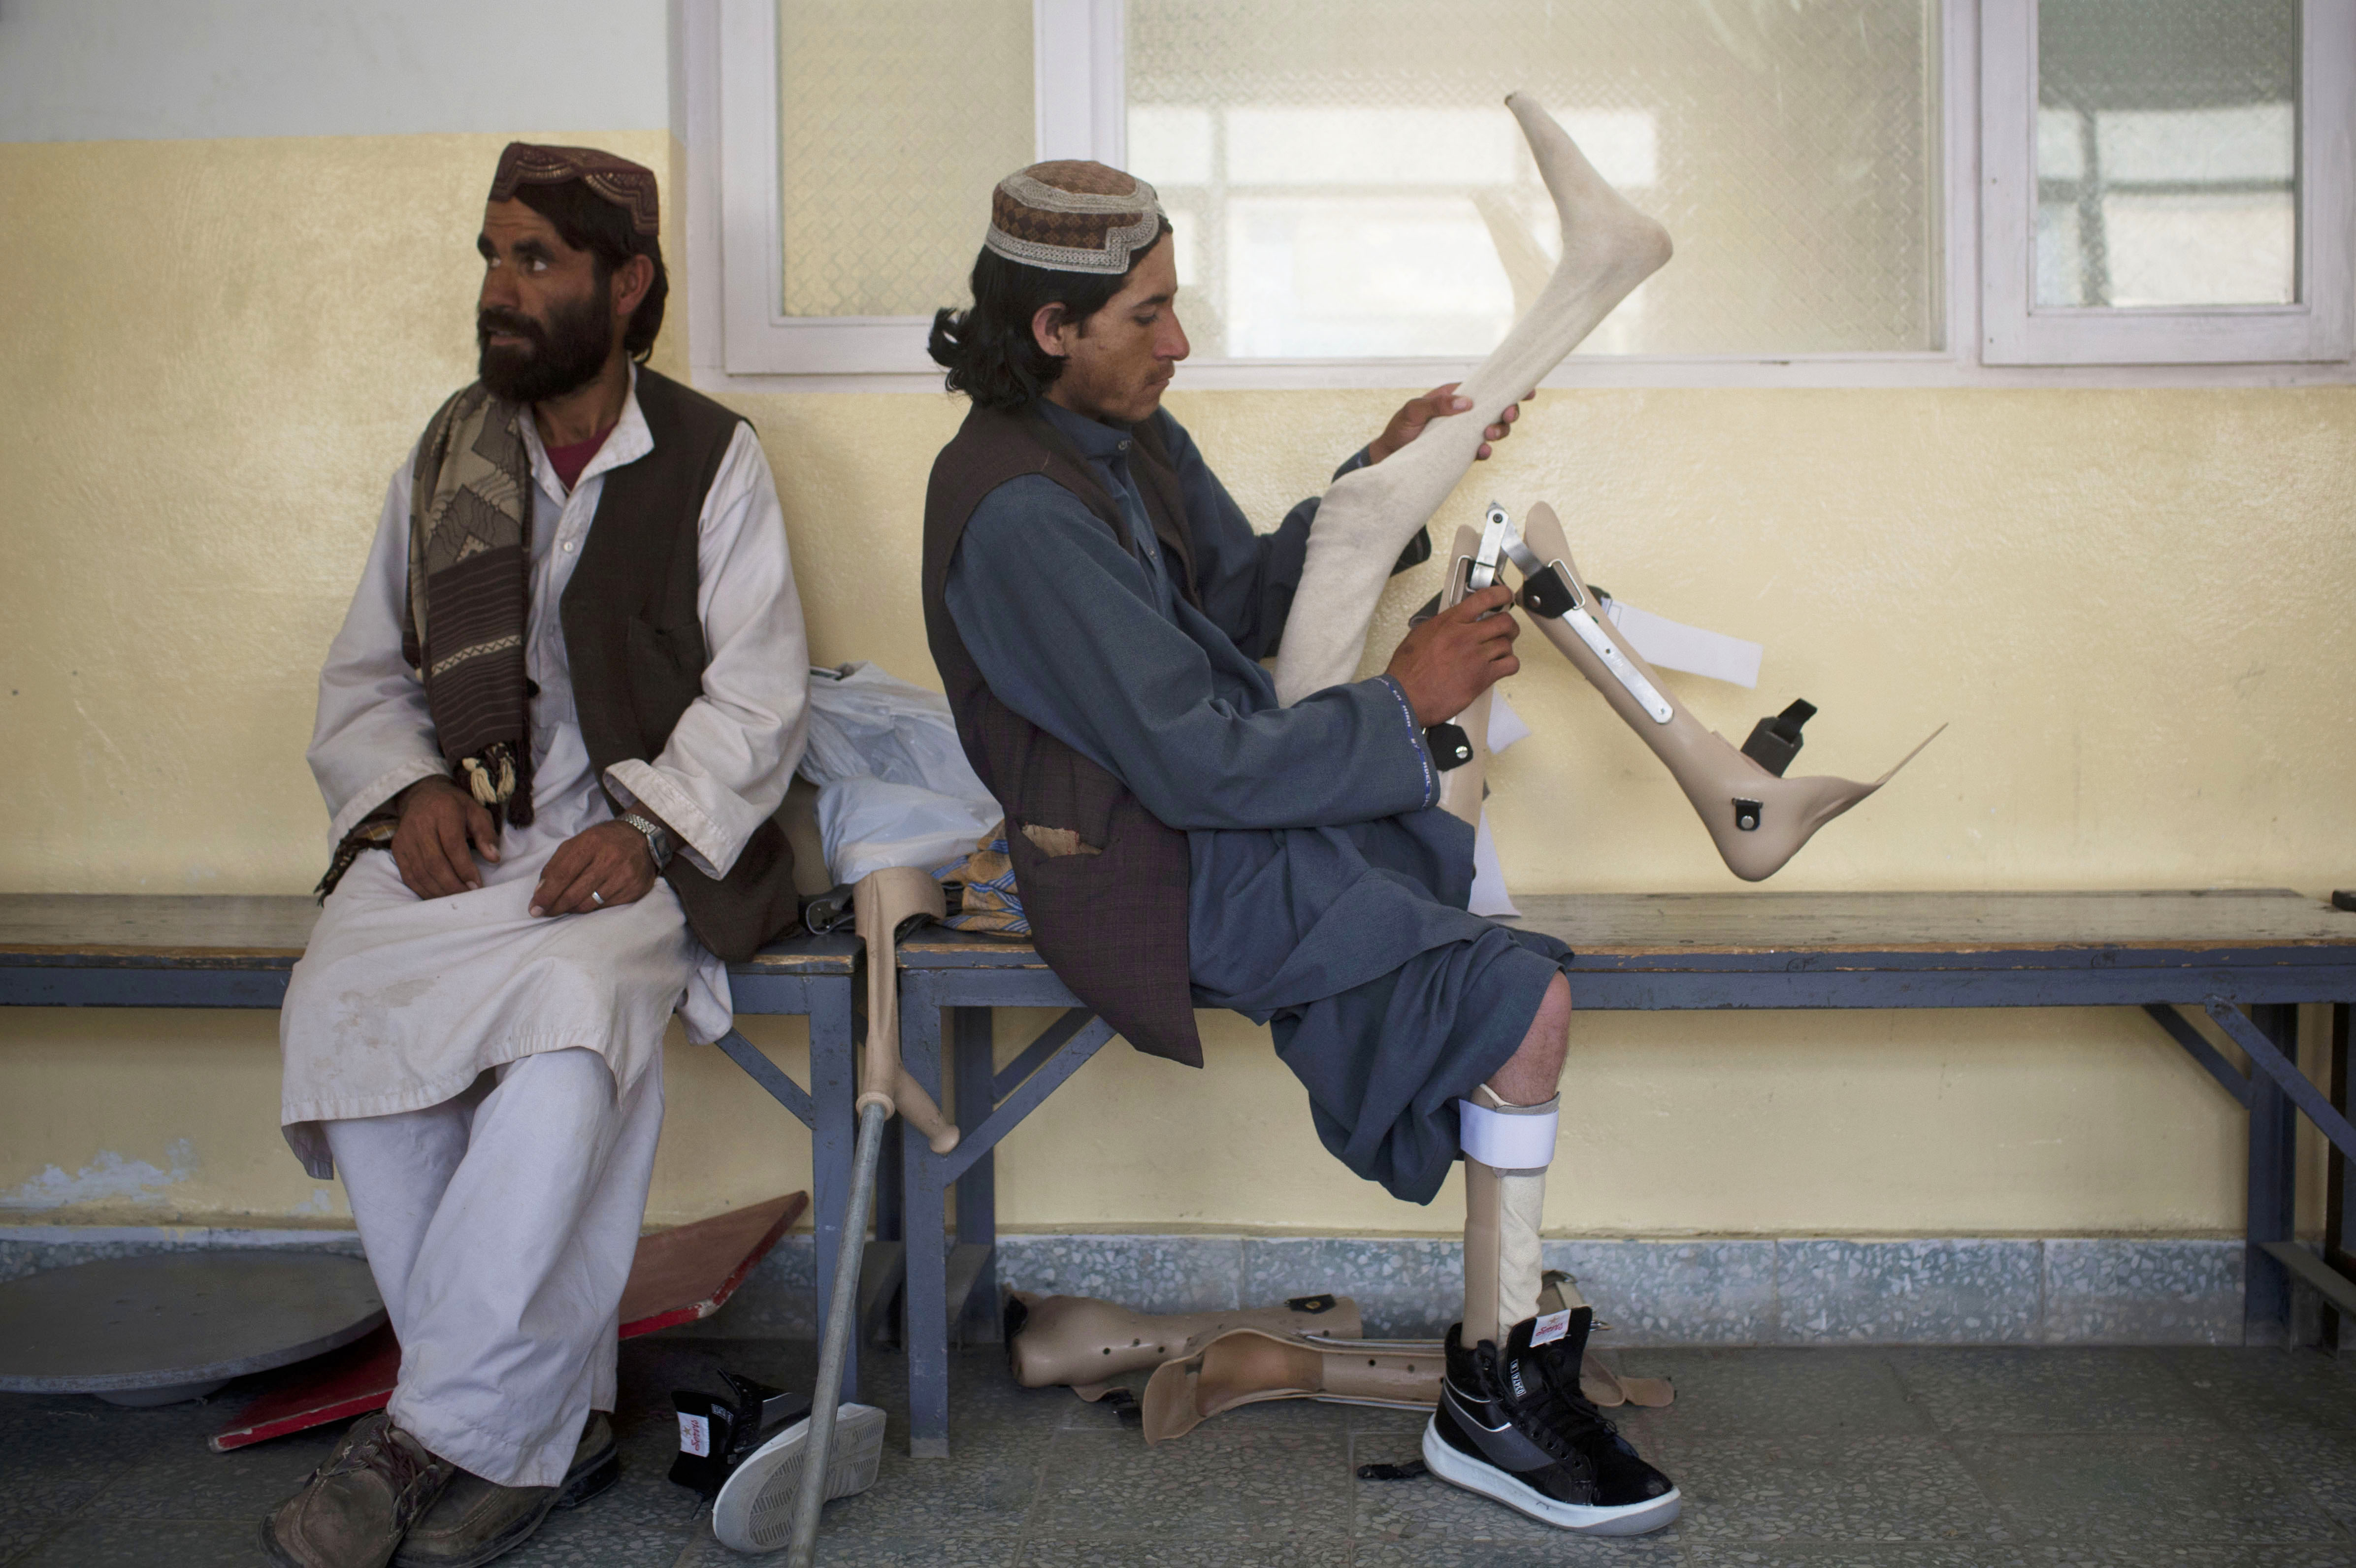 Afghan polio victim Musa, 15, is accompanied by his older brother, Nordahan, at a rehabilitation center in Kabul in 2012.